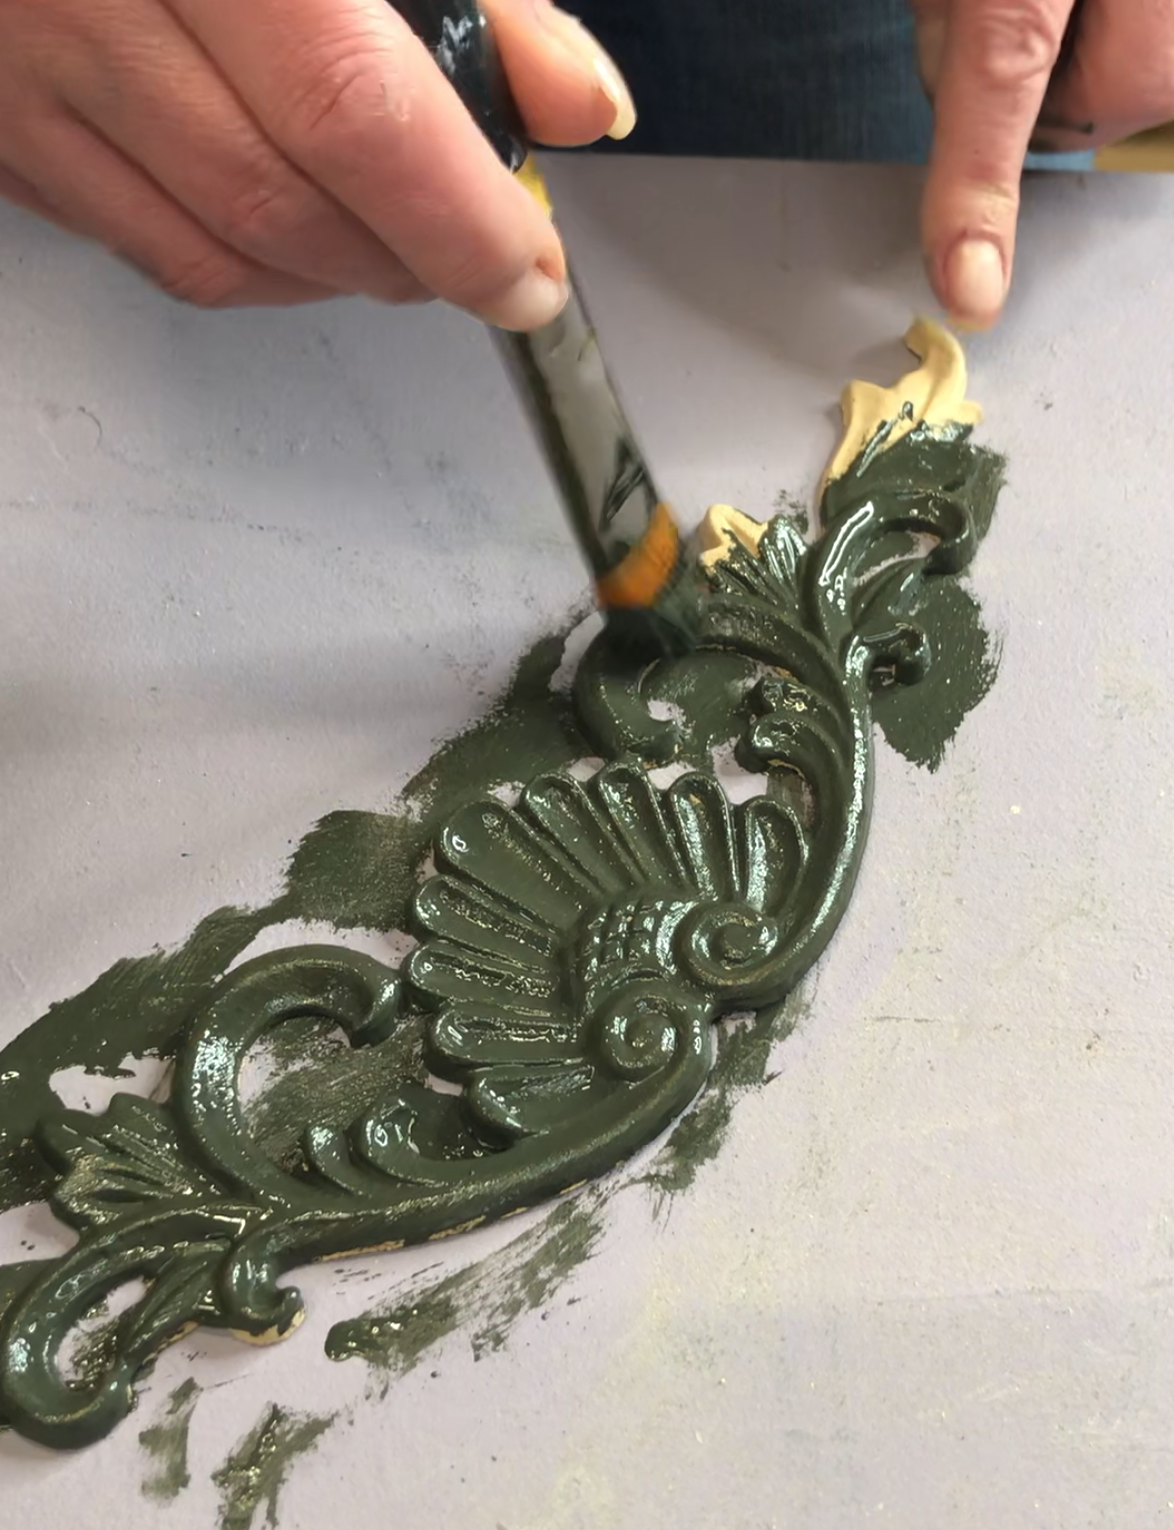 A WoodUbend moulding being pre painted in a grey green colour. The paint is still fresh and you can see the reflection of the light.